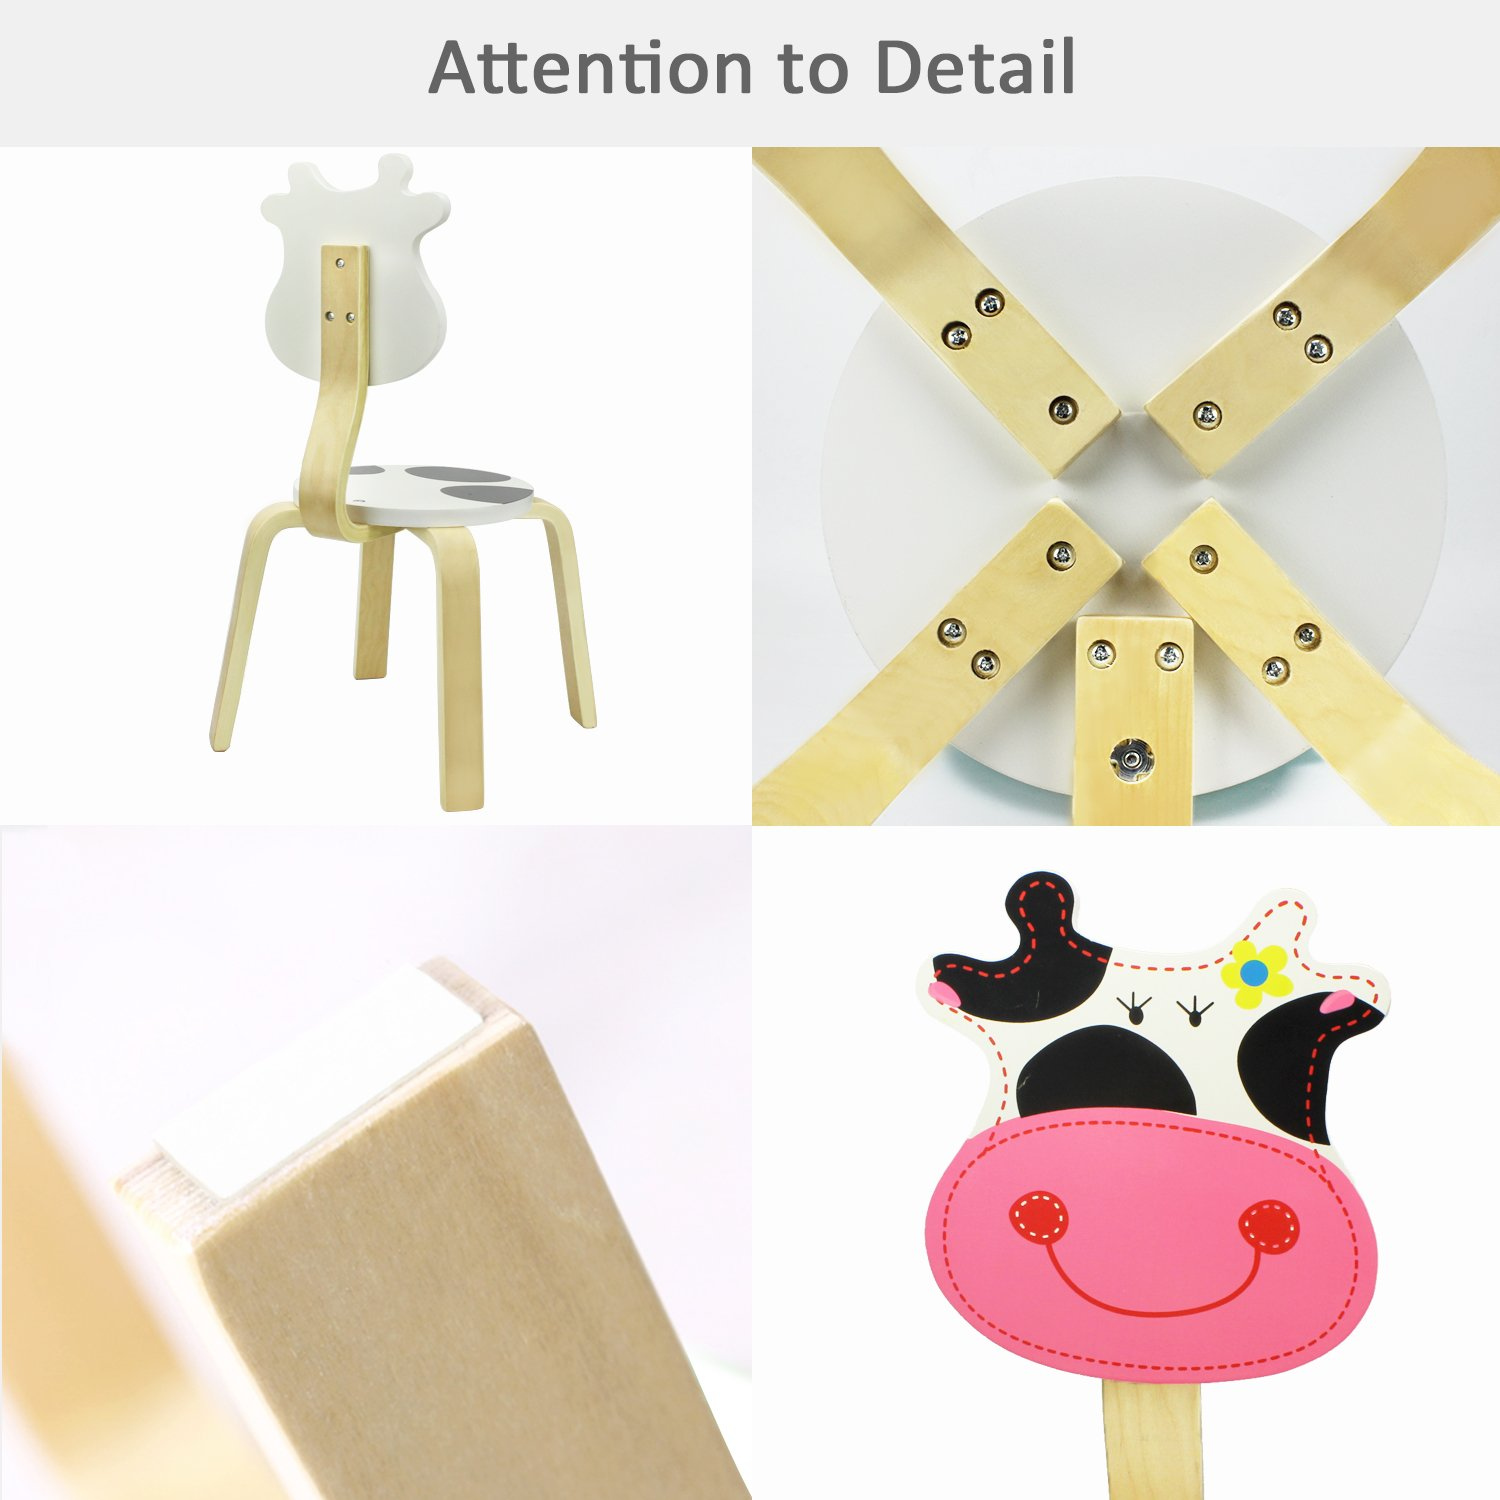 iPlay, iLearn Kids Wood Stacking Chair, Cute Cow Seat for Indoor, Outdoor, Playroom, Time Out, Classroom, Daycare, School Learning Furniture Round Stool for 2, 3, 4, 5 Year Olds Up Child, Boy, Girl by iPlay, iLearn (Image #4)